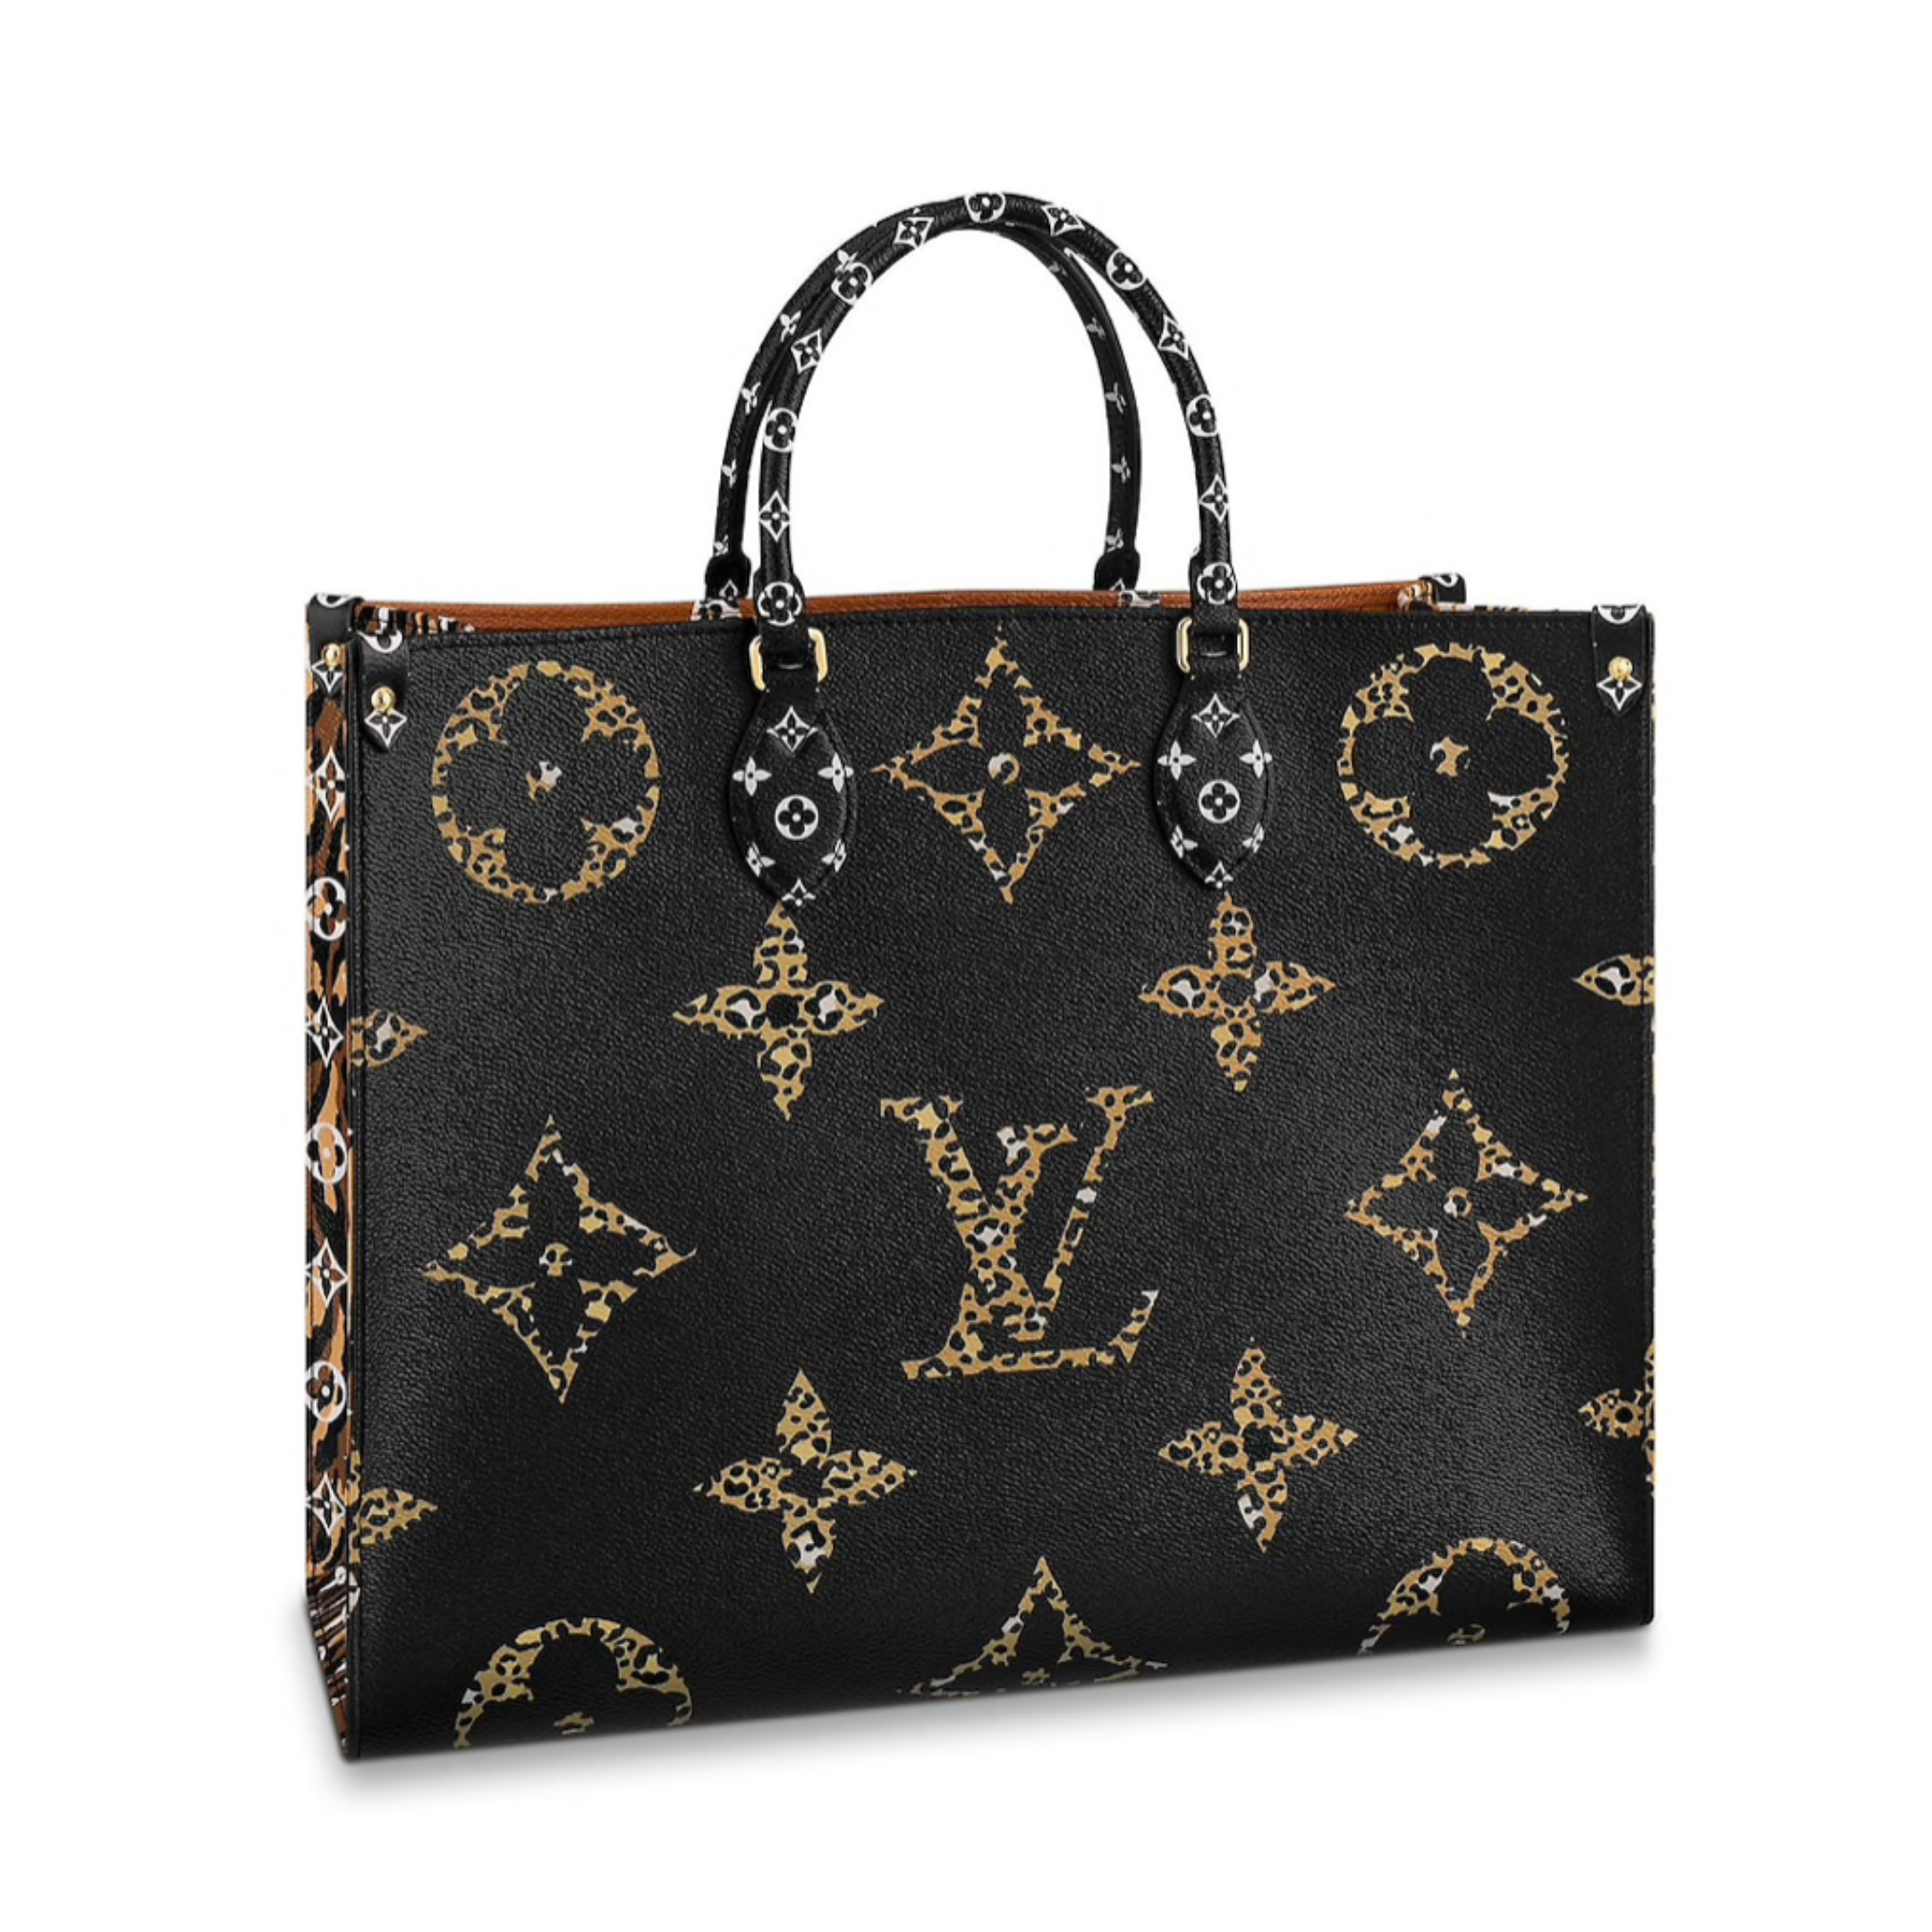 Original Louis Vuitton Bag: $3,000